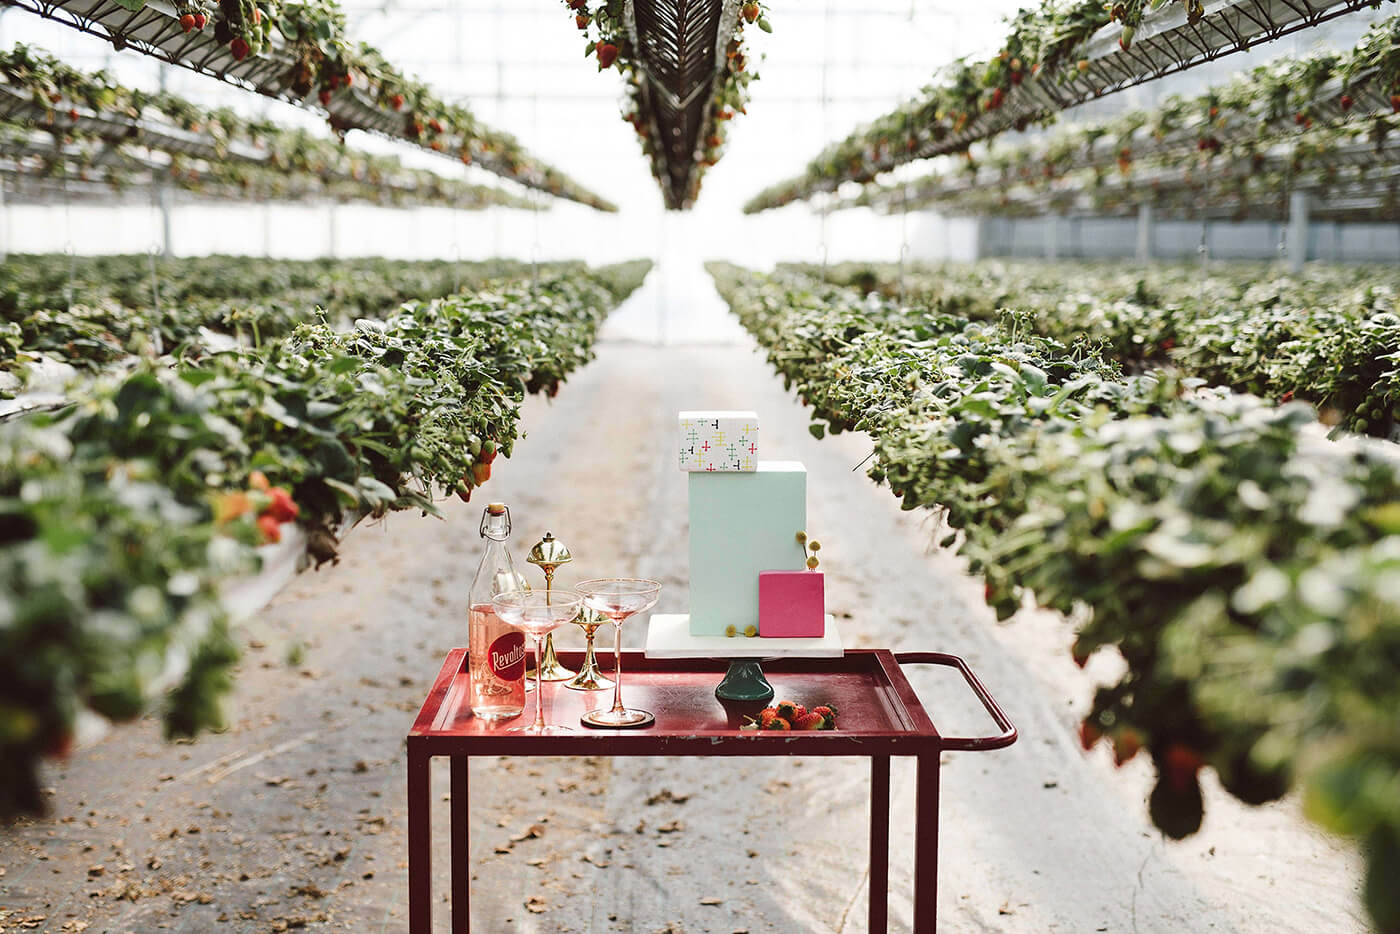 roma-organizacao-eventos-editorial-mid-century-modern-wedding-in-a-strawberry-field-26